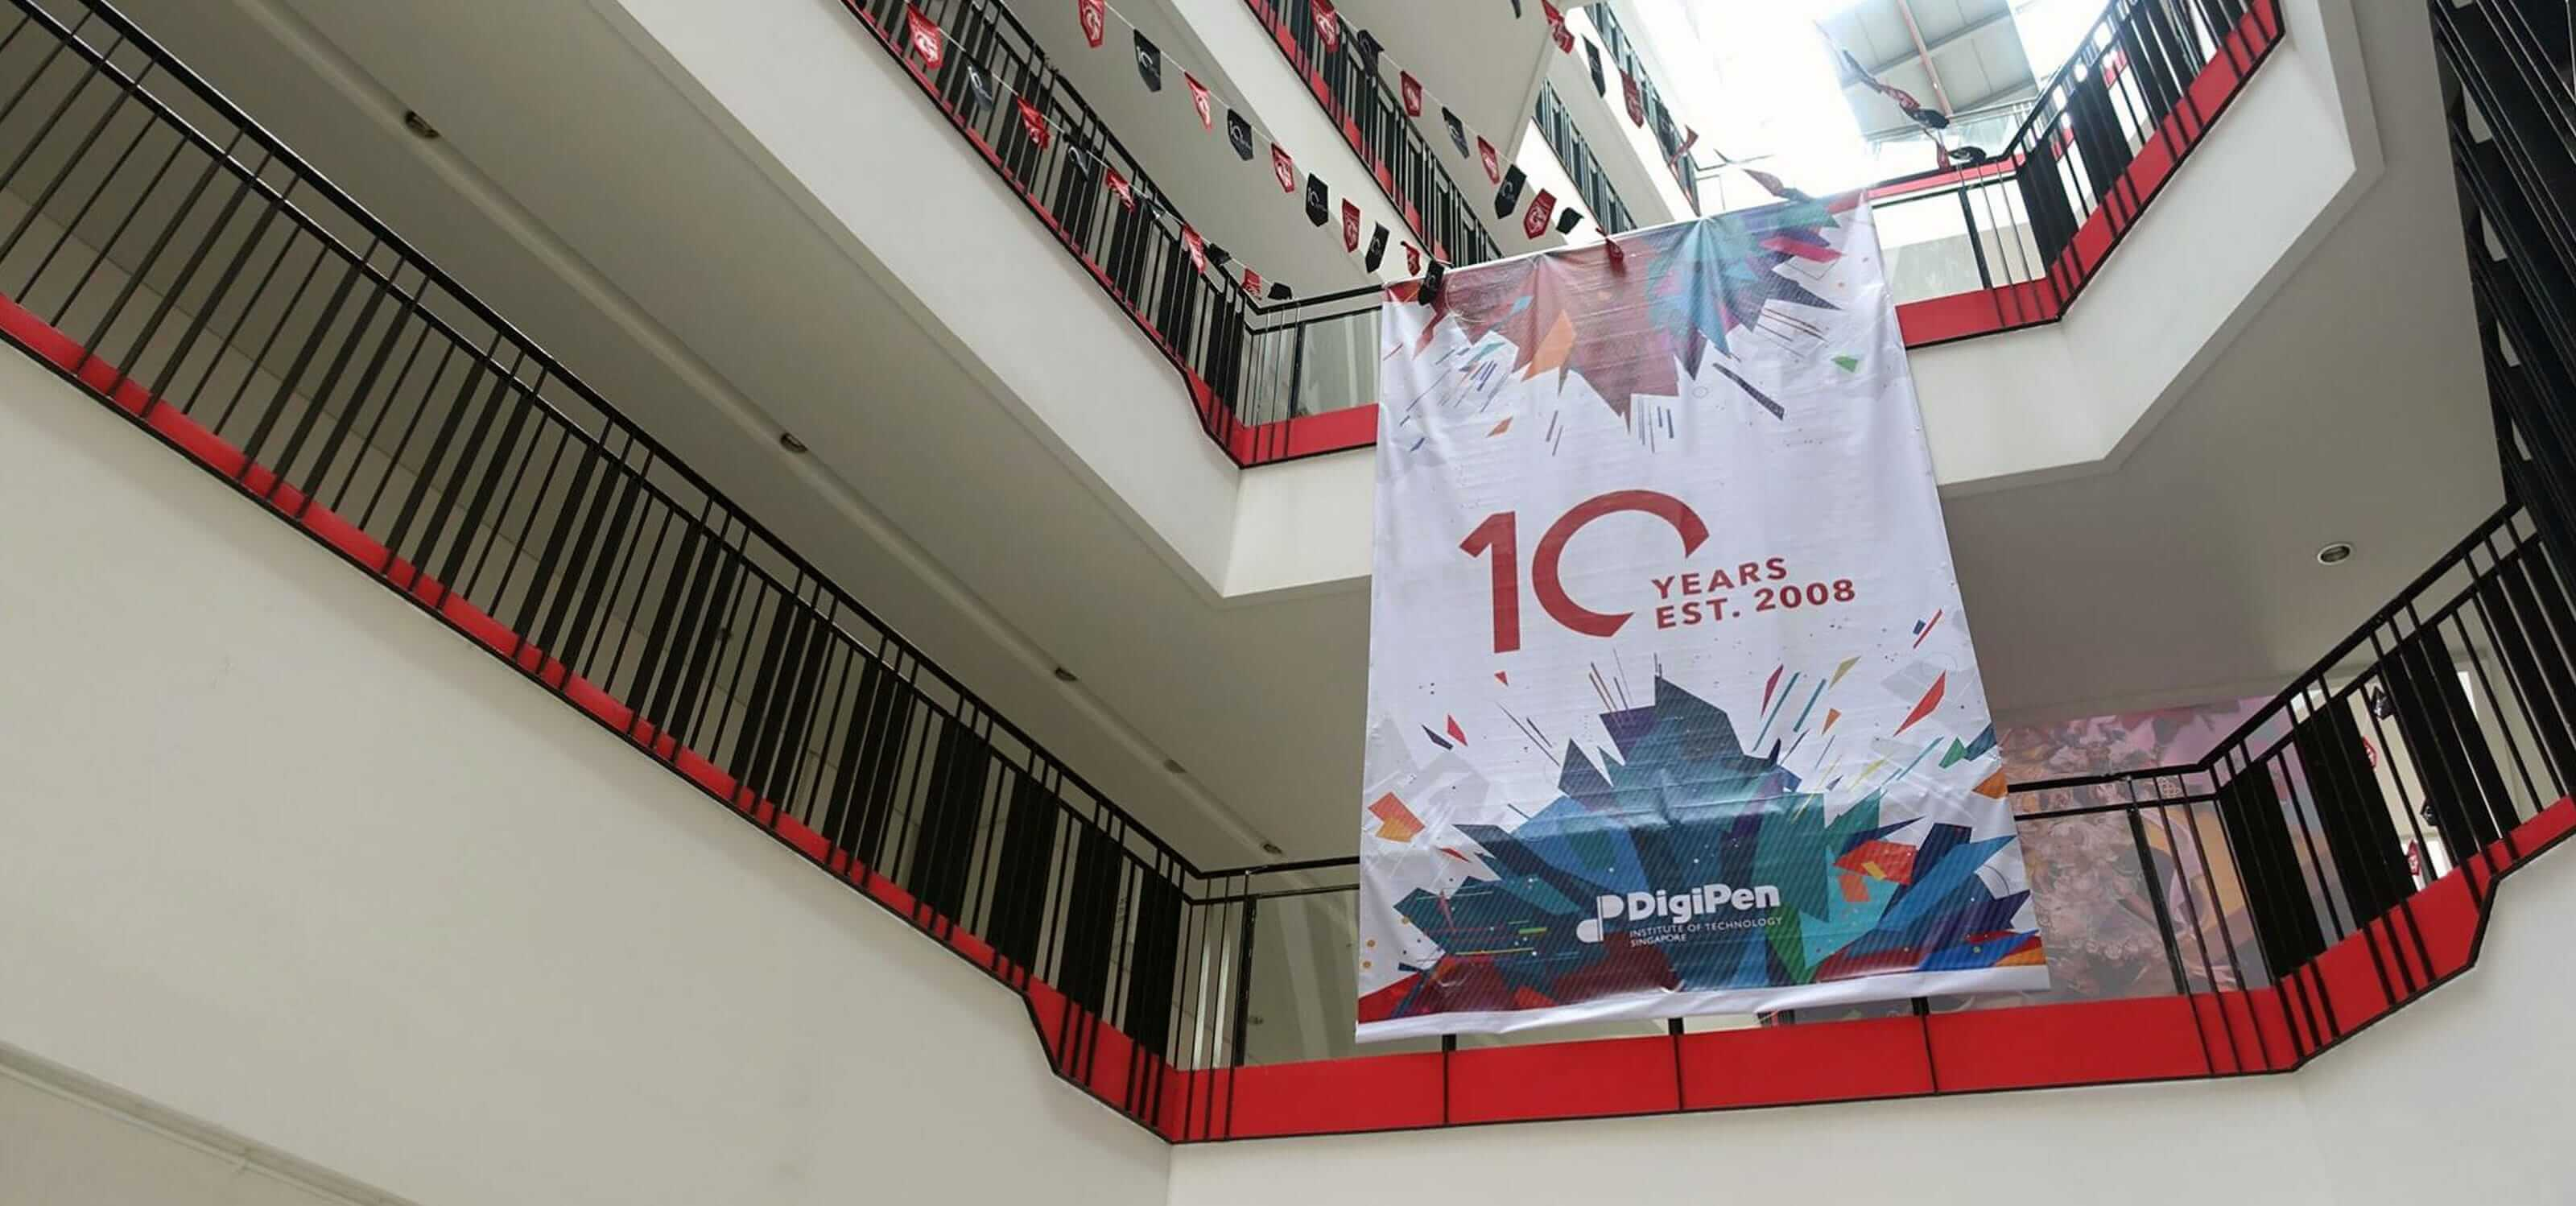 A banner hangs in the atrium of the DigiPen (Singapore) building celebrating the 10th anniversary